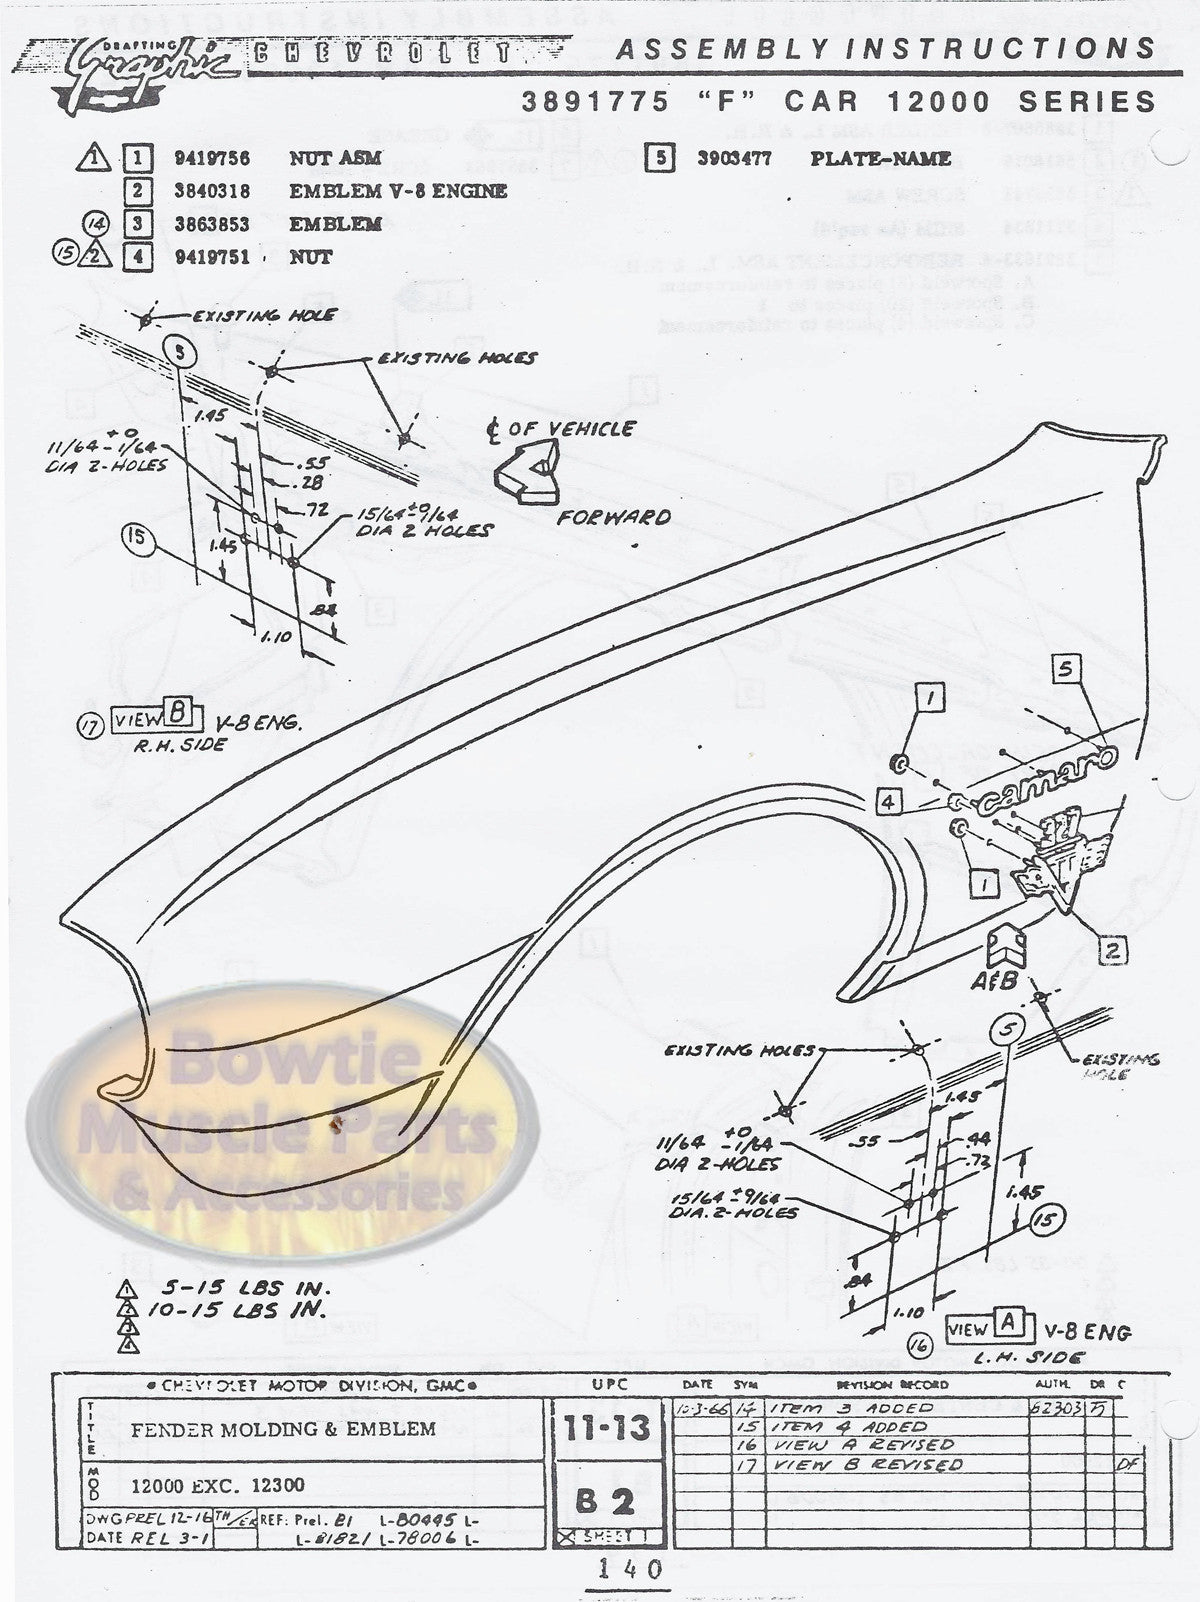 2001 Monte Carlo Engine Diagram Wiring Library 03 72 Example Electrical U2022 Rh Huntervalleyhotels Co